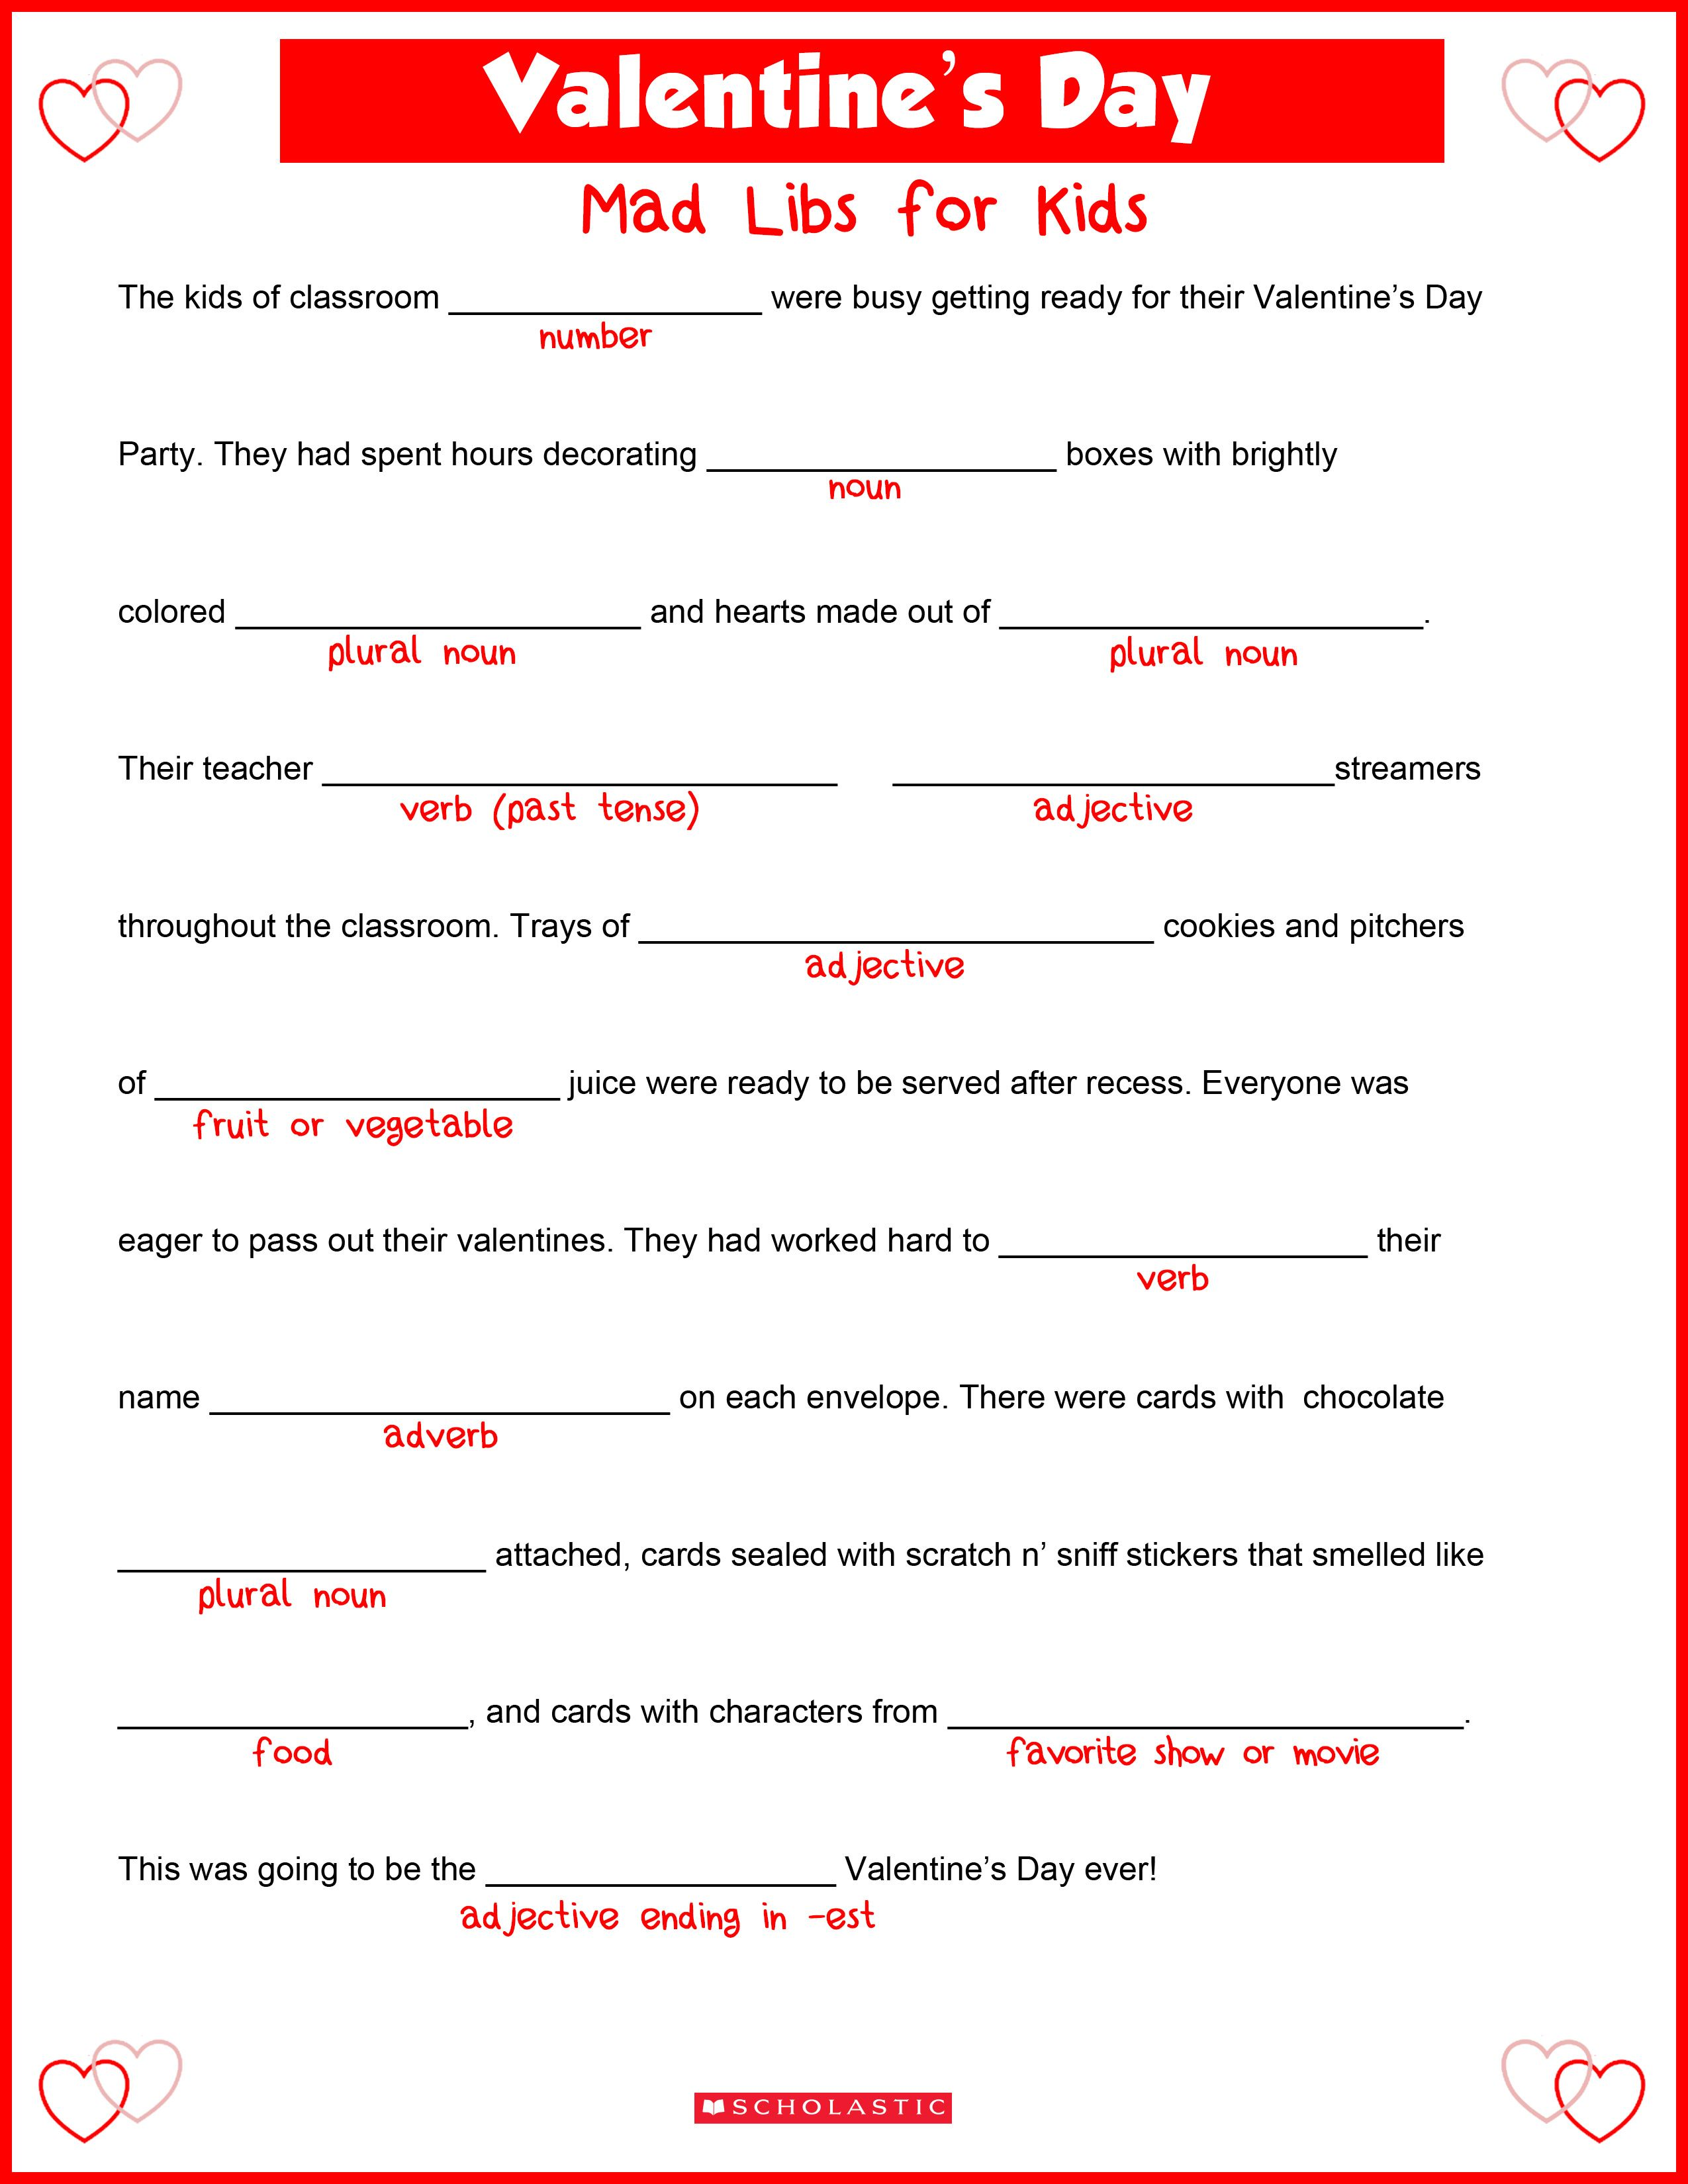 Valentine S Day Mad Libs Activity For Kids